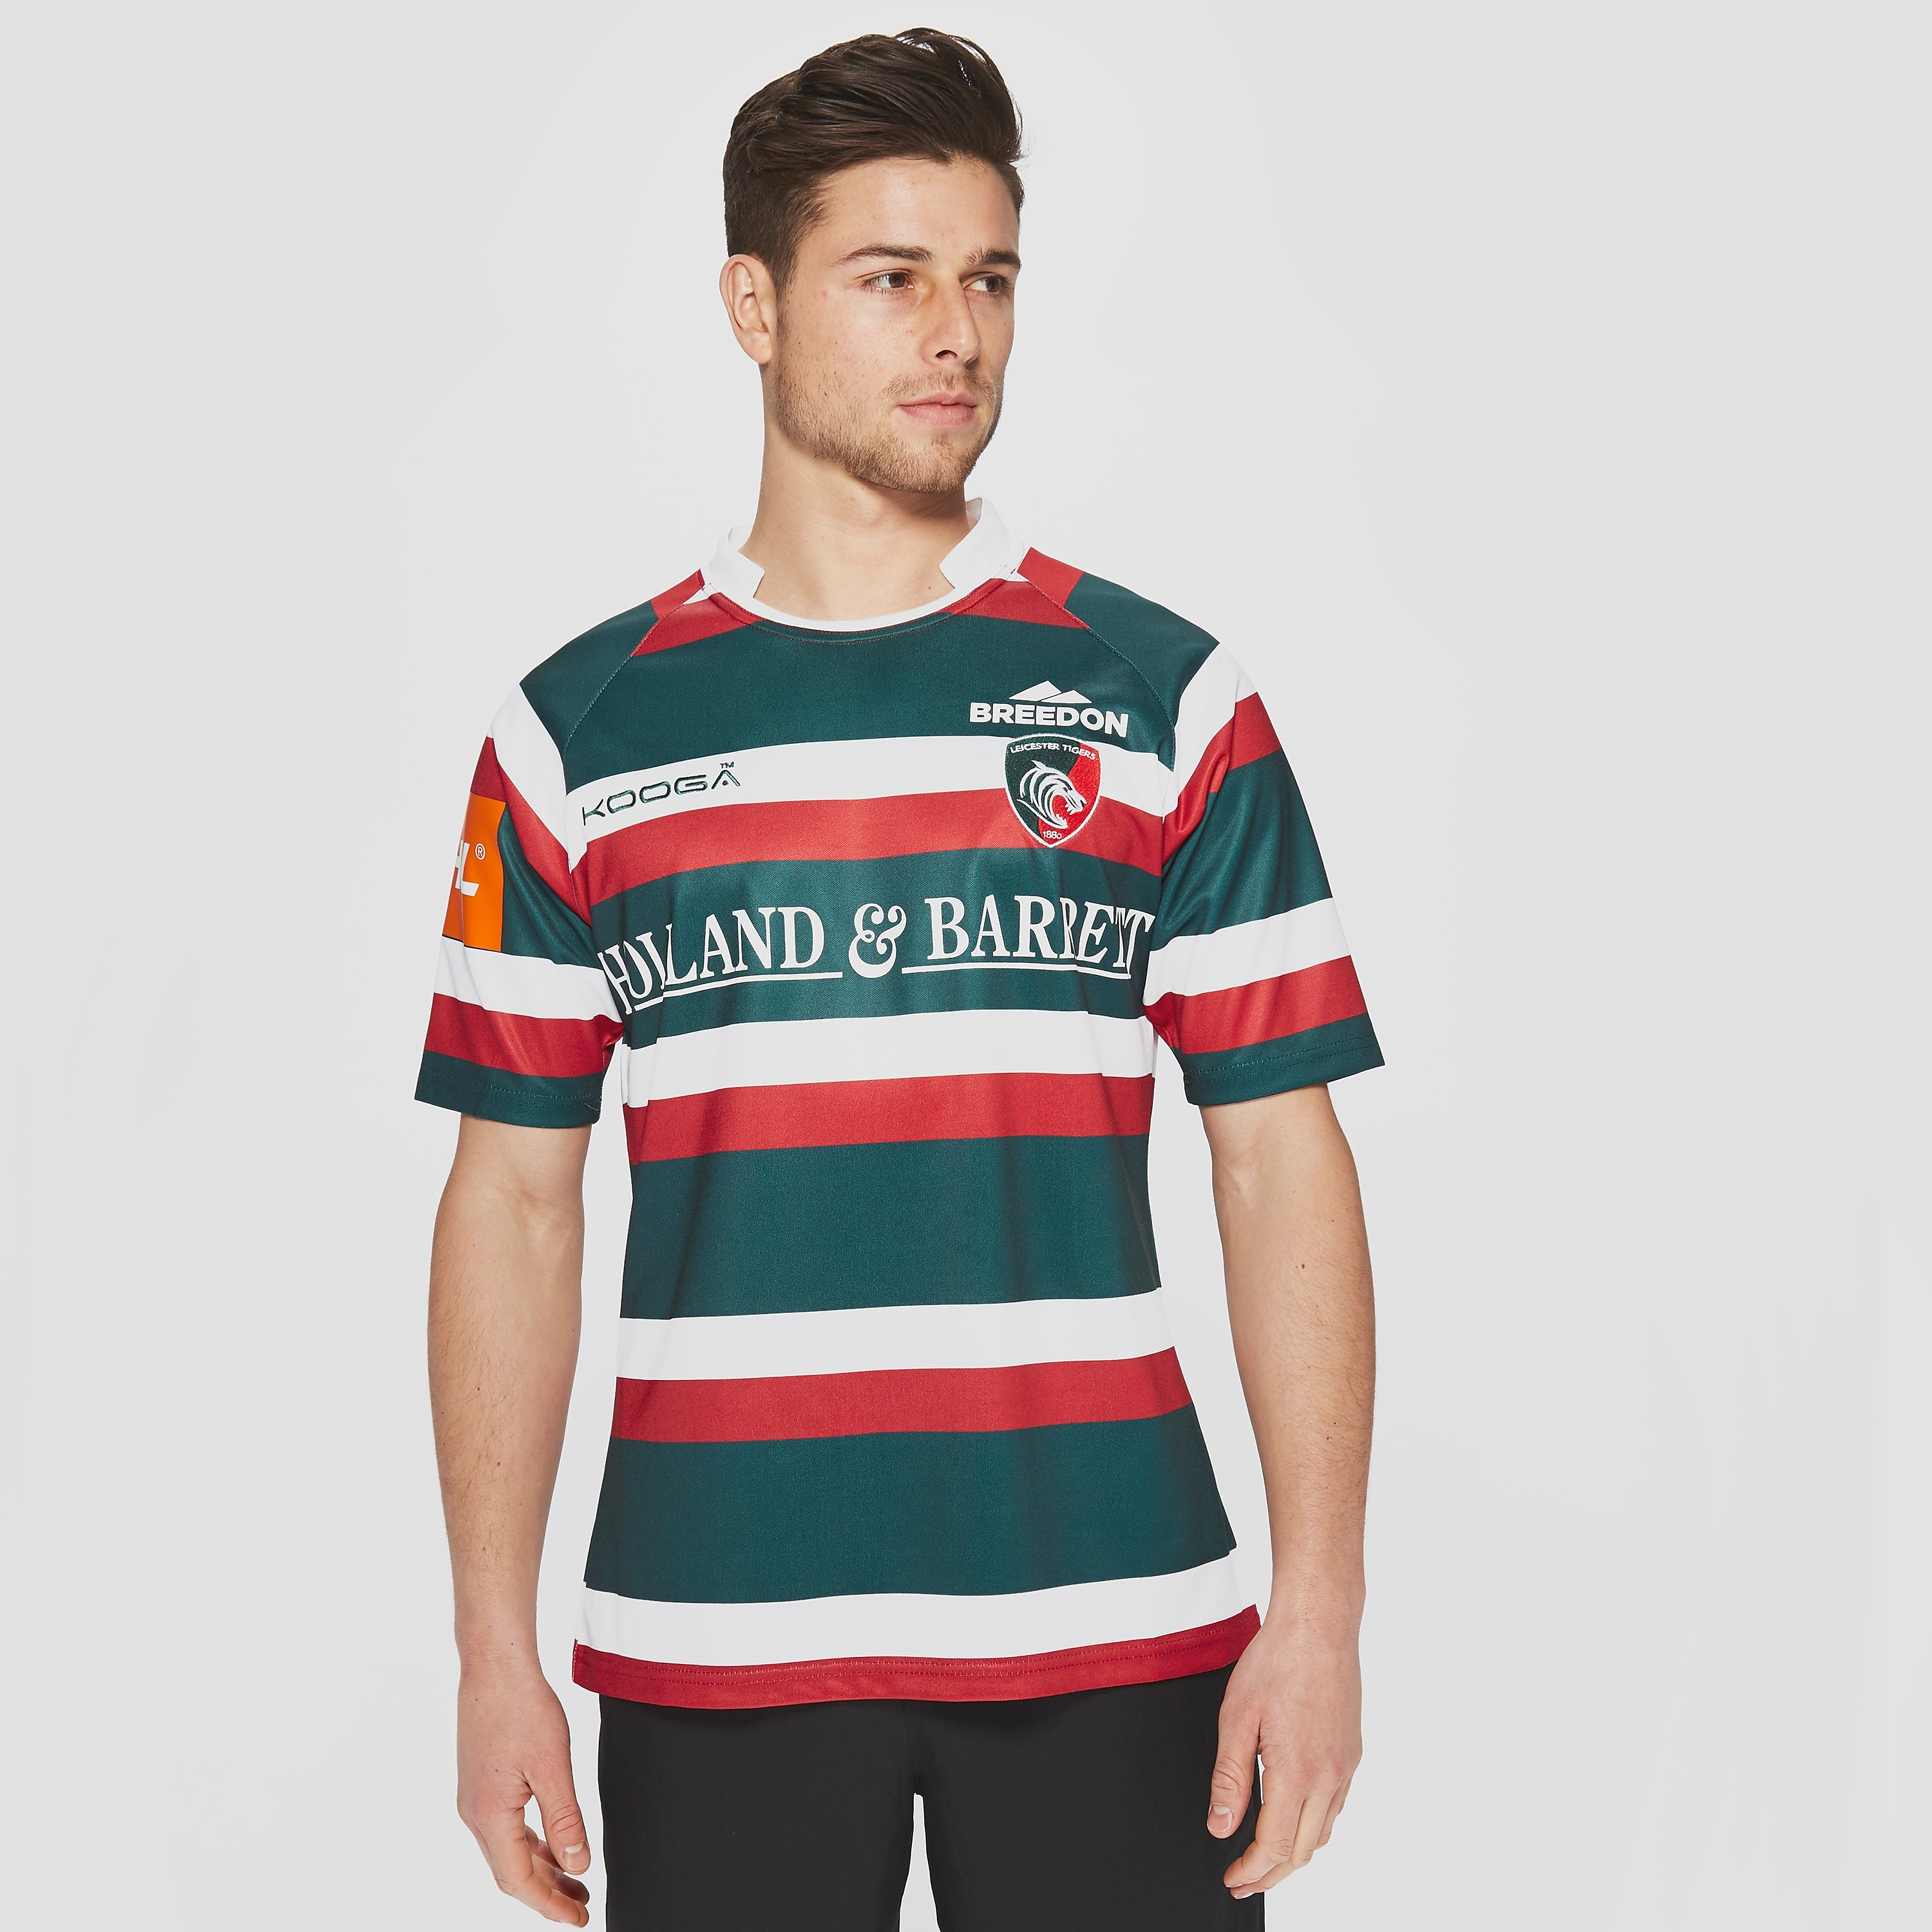 KooGa Leicester Tigers 2016/17 Replica Home Rugby Shirt